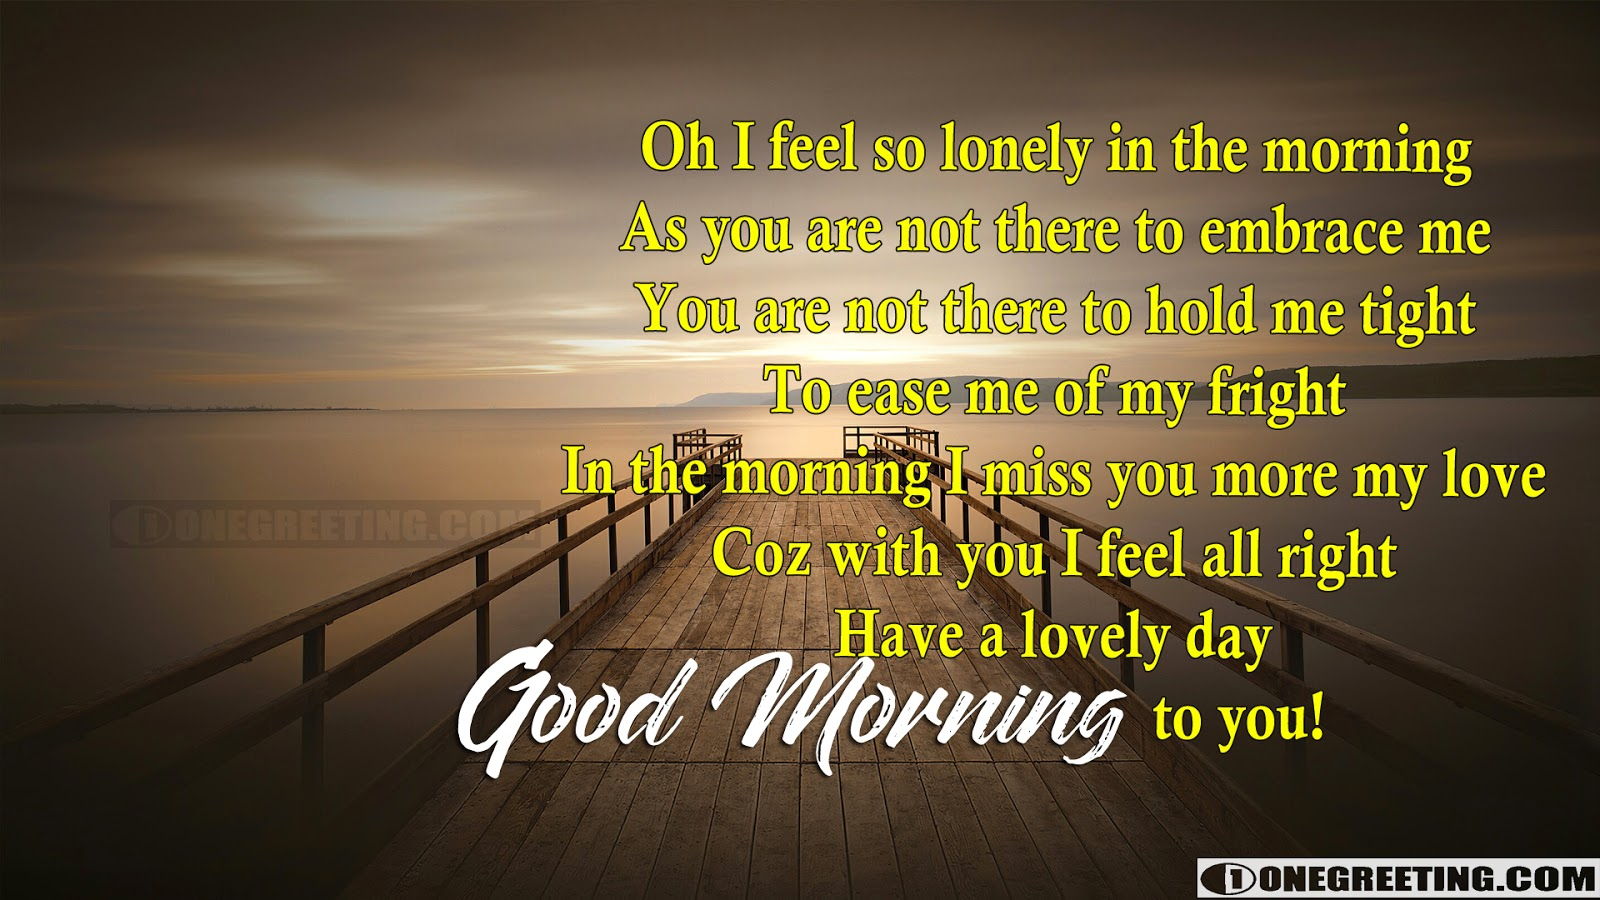 Oh I Feel So Lonely In The Morning Good Morning One Greeting